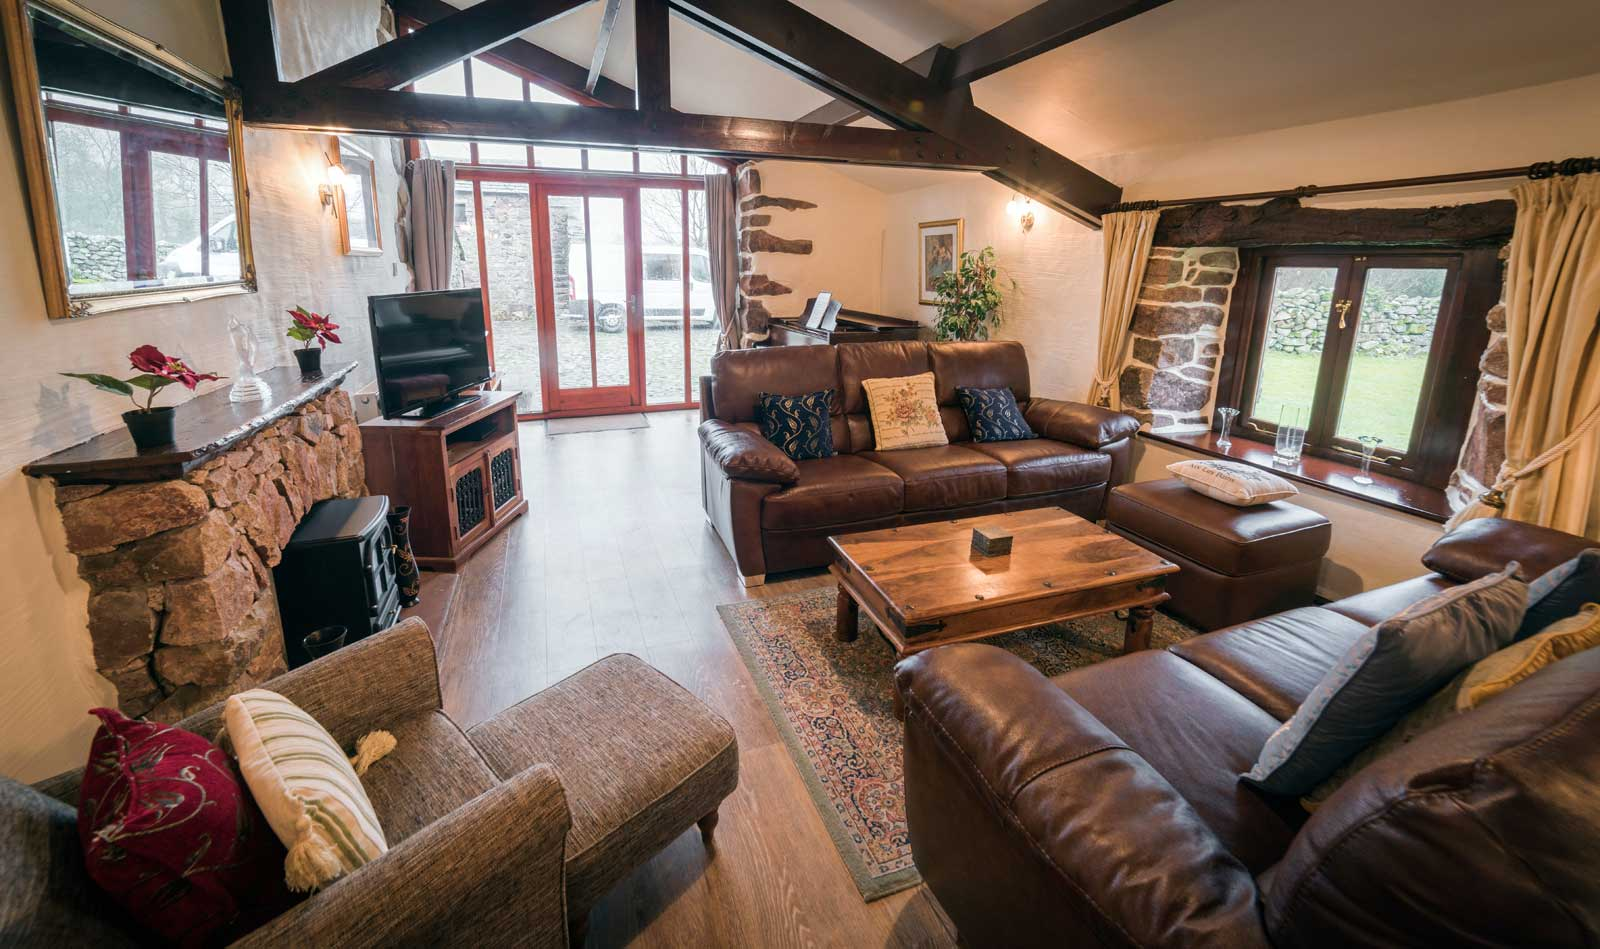 https://www.selectcottages.com/sites/default/files/revslider/image/wastwater-lounge-piano-main.jpg